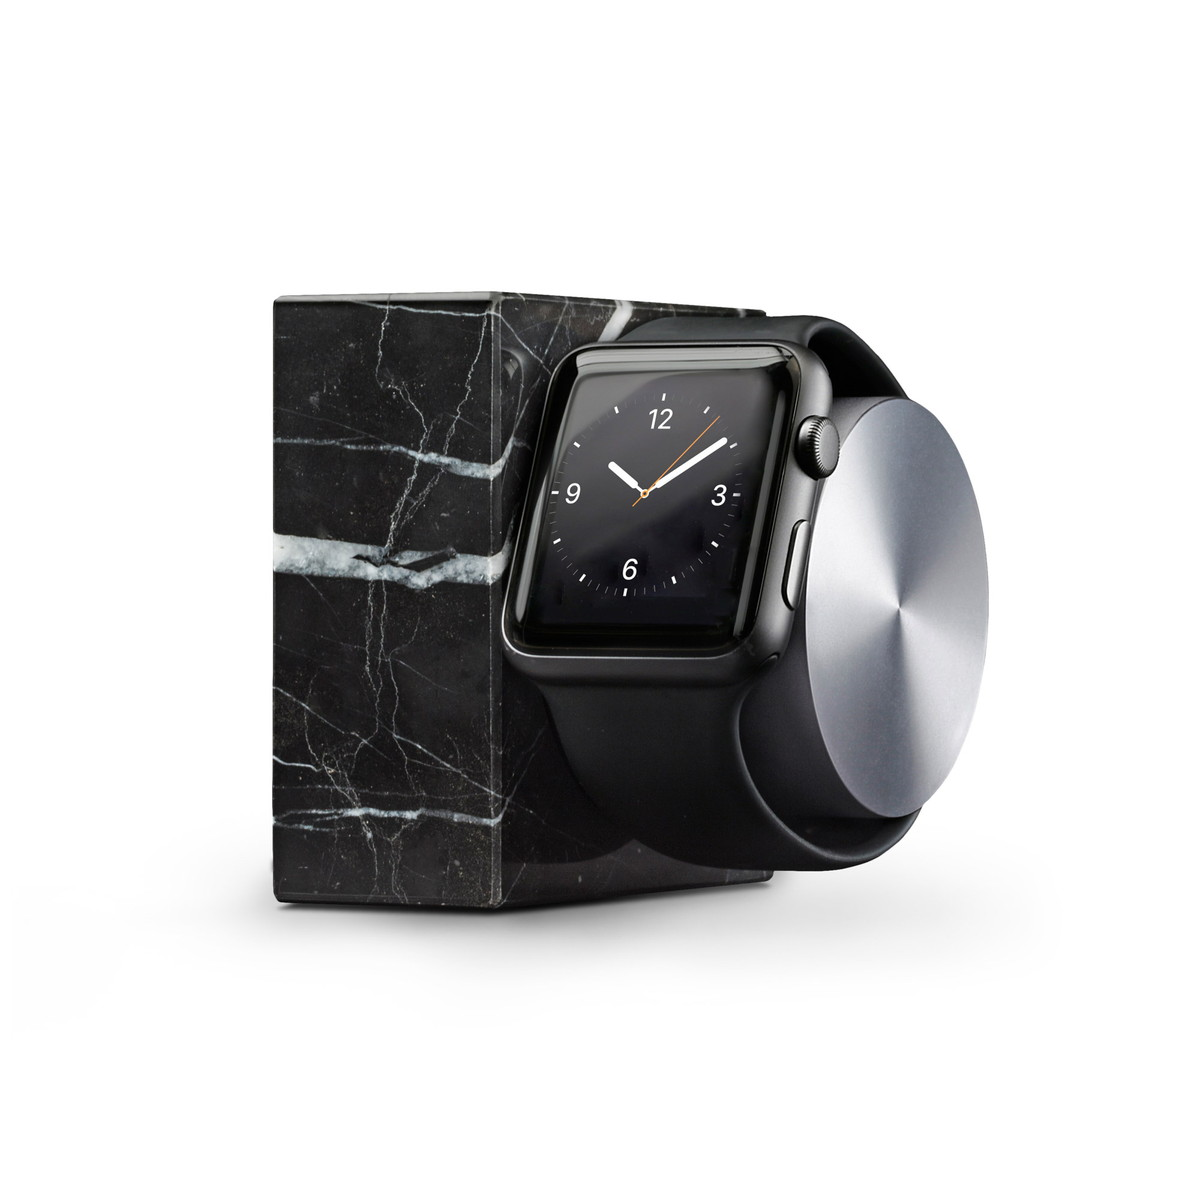 NATIVE UNION ネイティブユニオン Apple Watch Marble Dock - BLACK